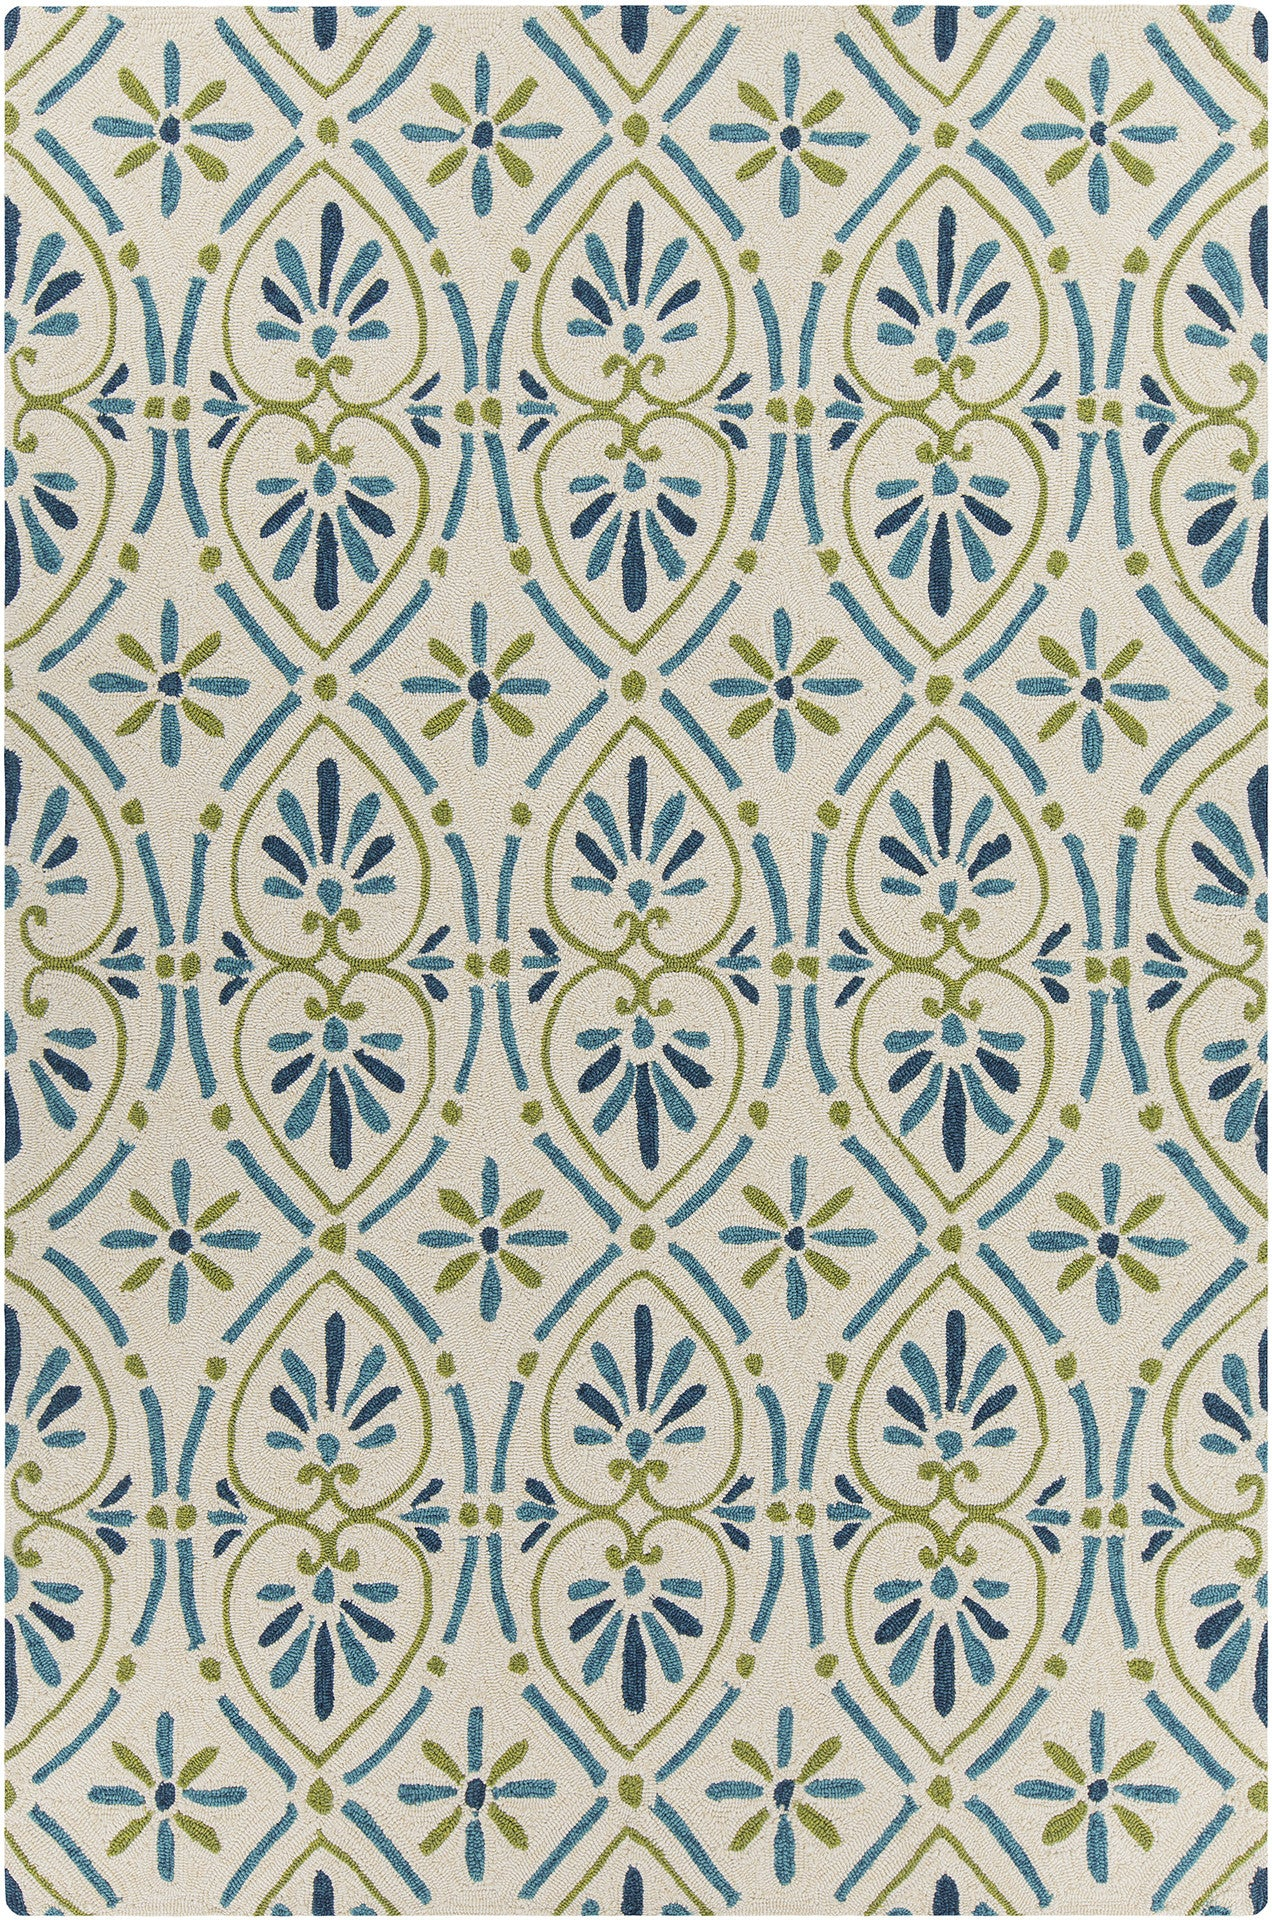 Terra Collection Hand Tufted Area Rug in Cream Blue & Green